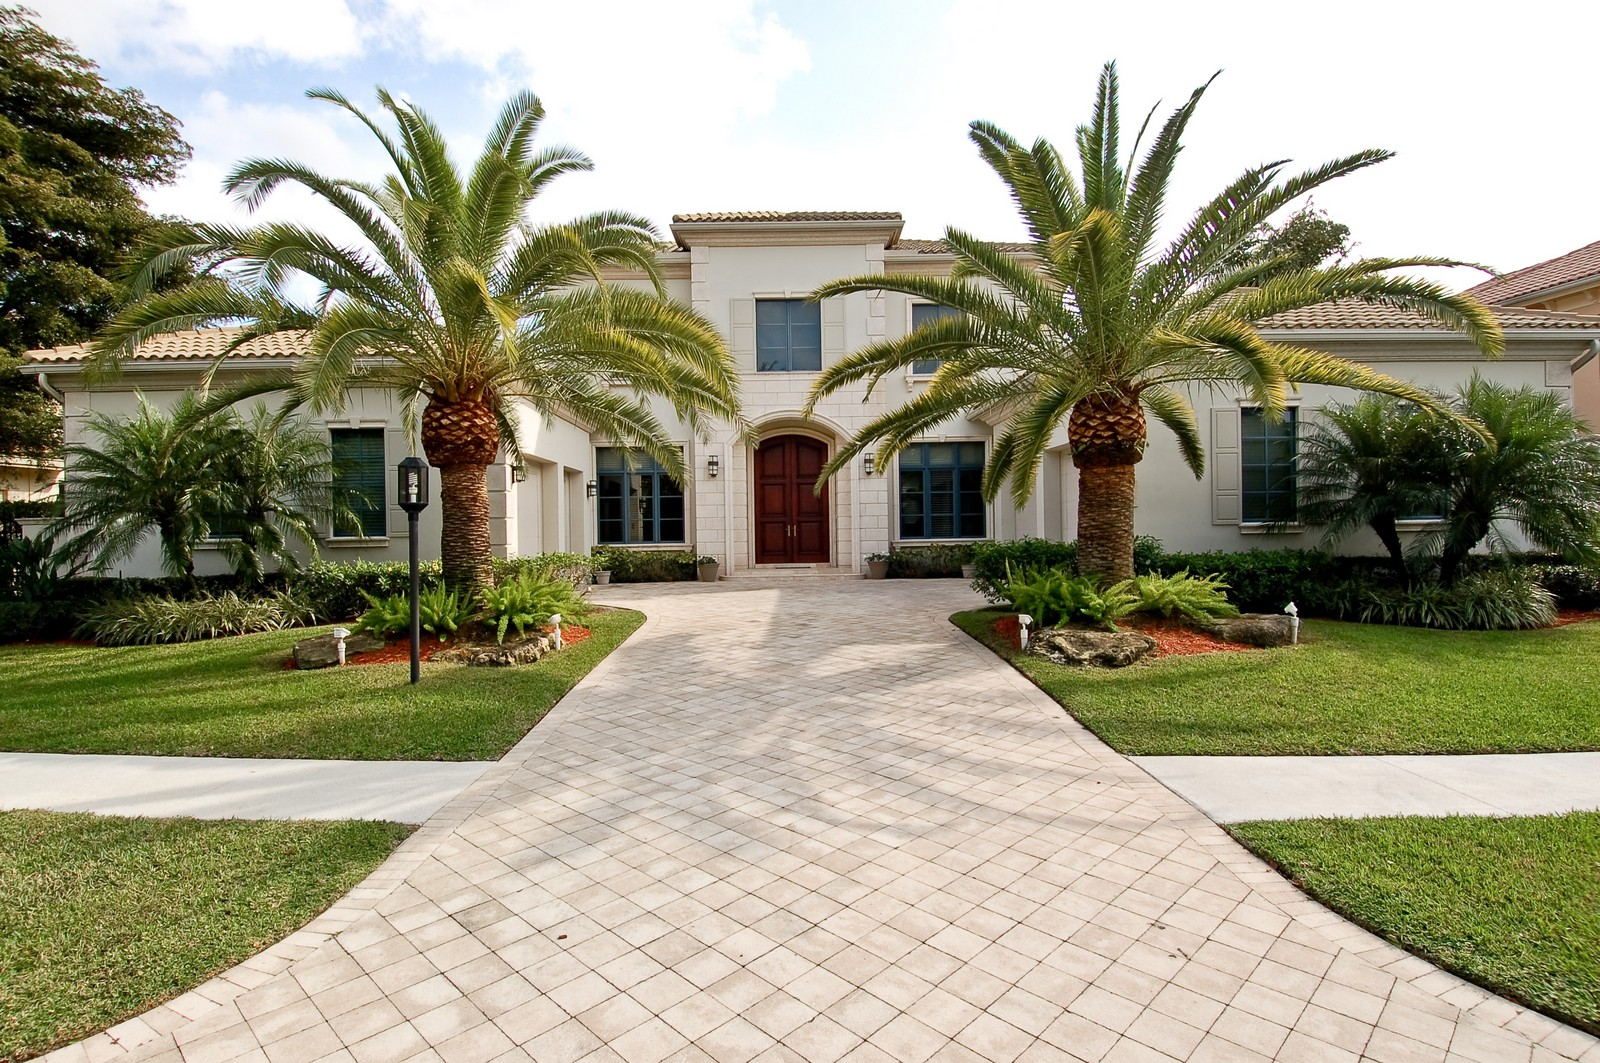 Real Estate Photography - 7478 Valencia Dr, Boca Raton, FL, 33433 - Front View